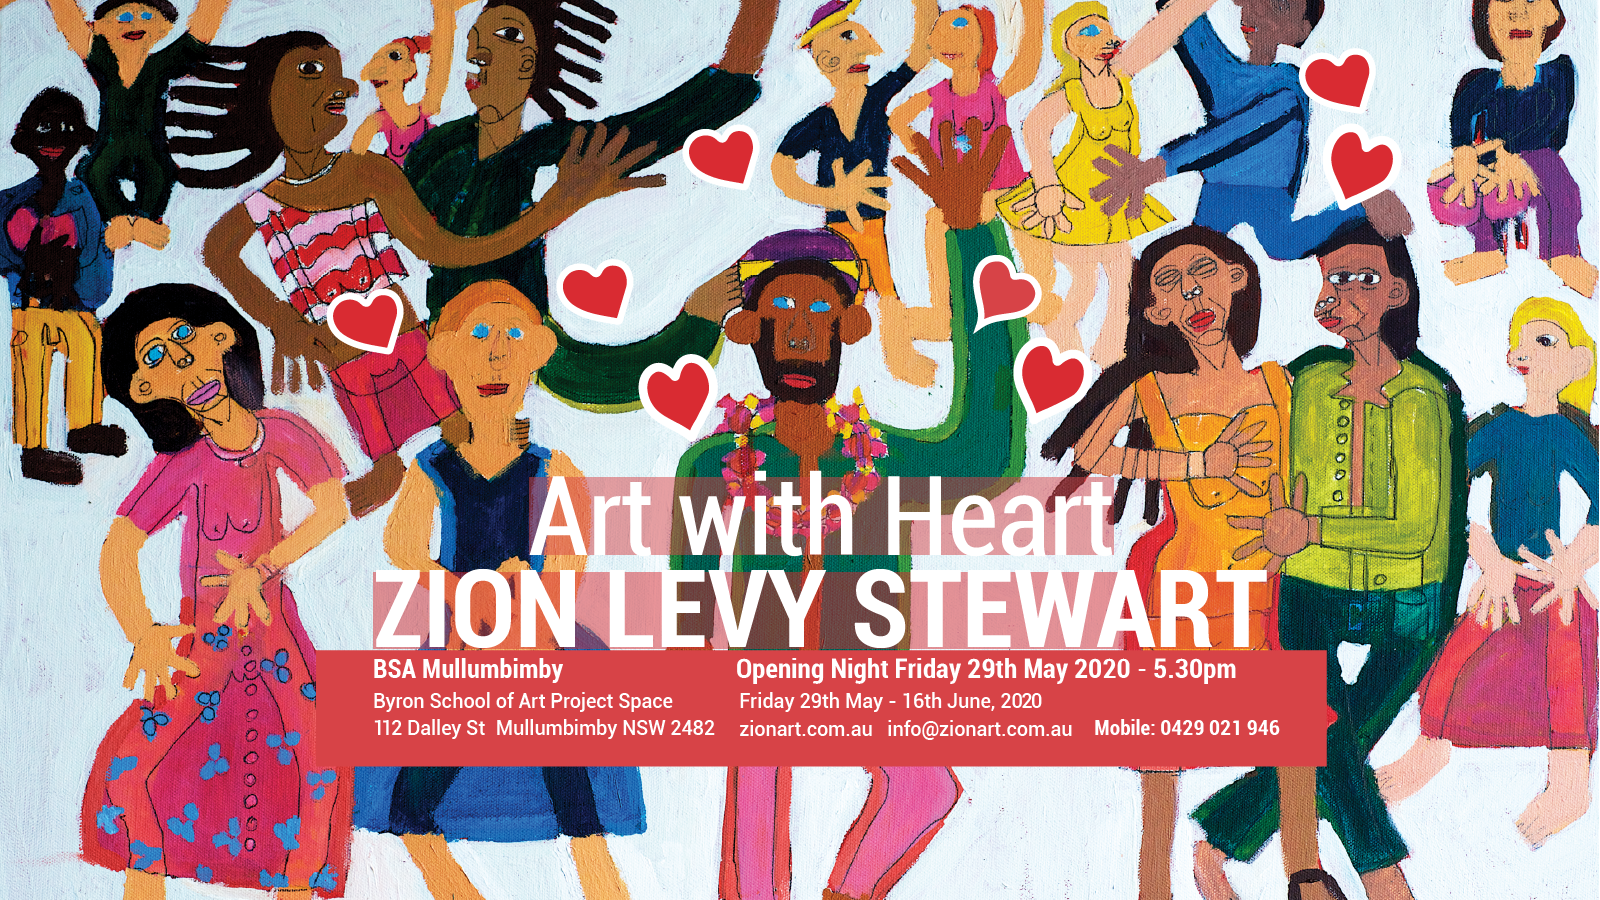 Art with Heart Exhibition Zion Levy STewart May 2020